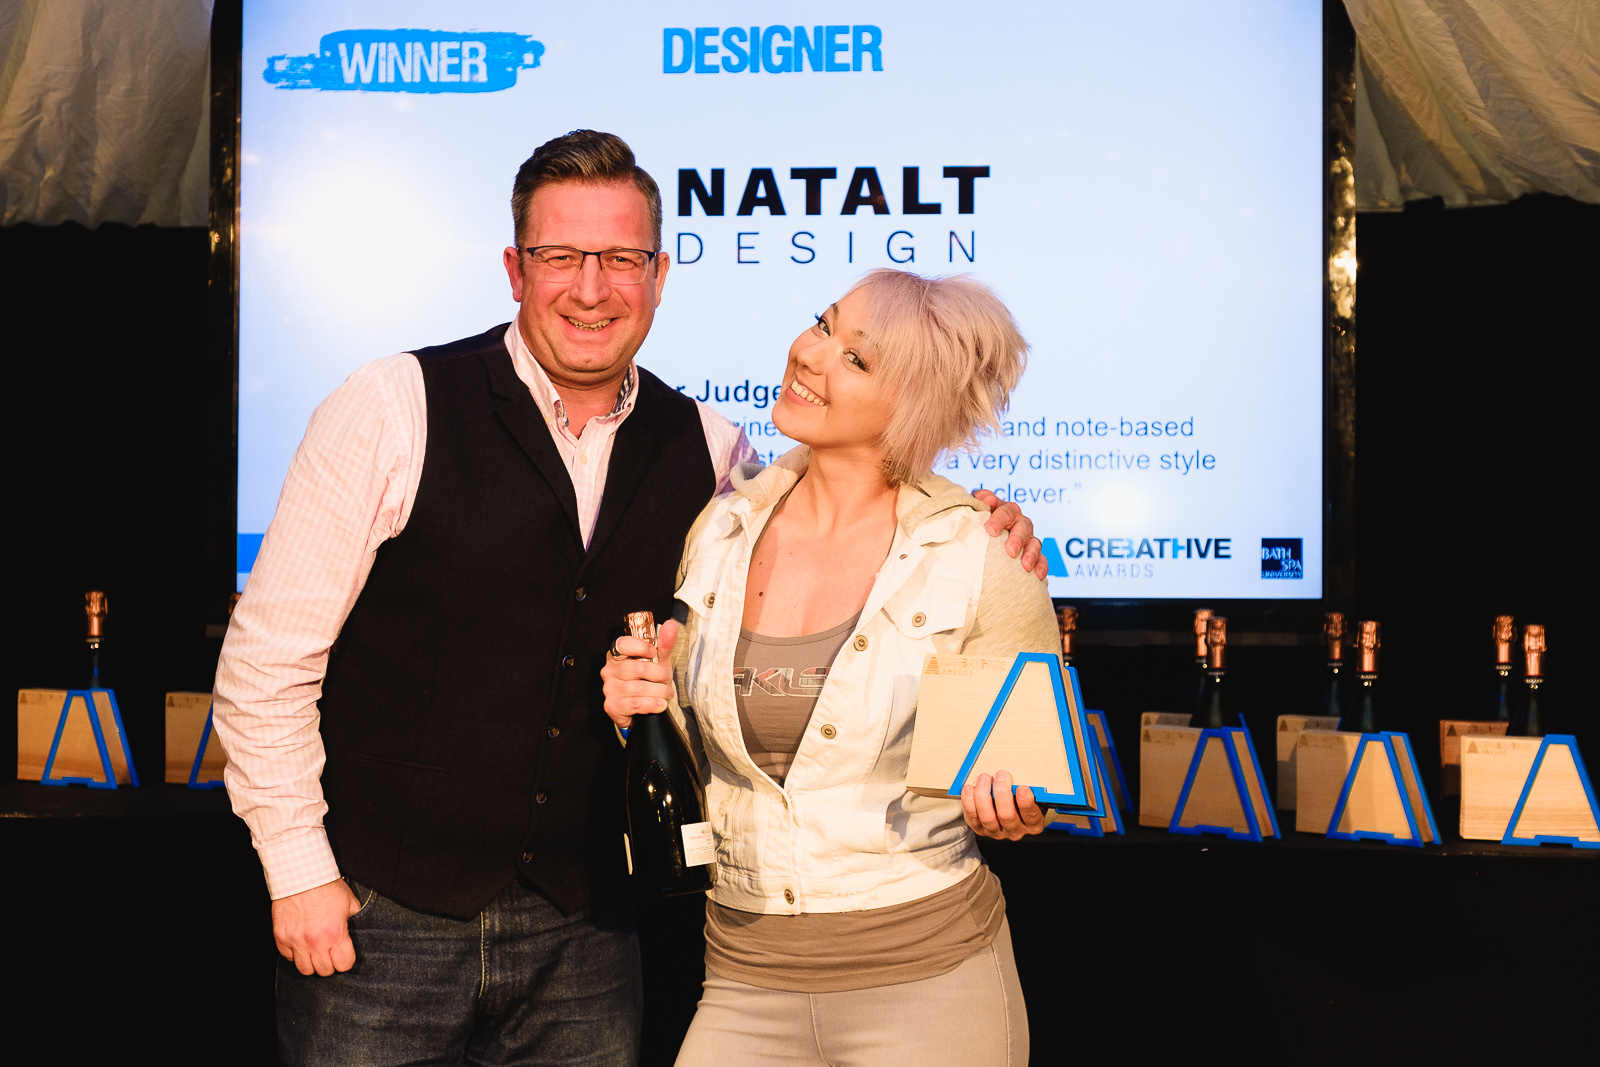 Corporate event photography with winner at Bath Creative Awards receiving award